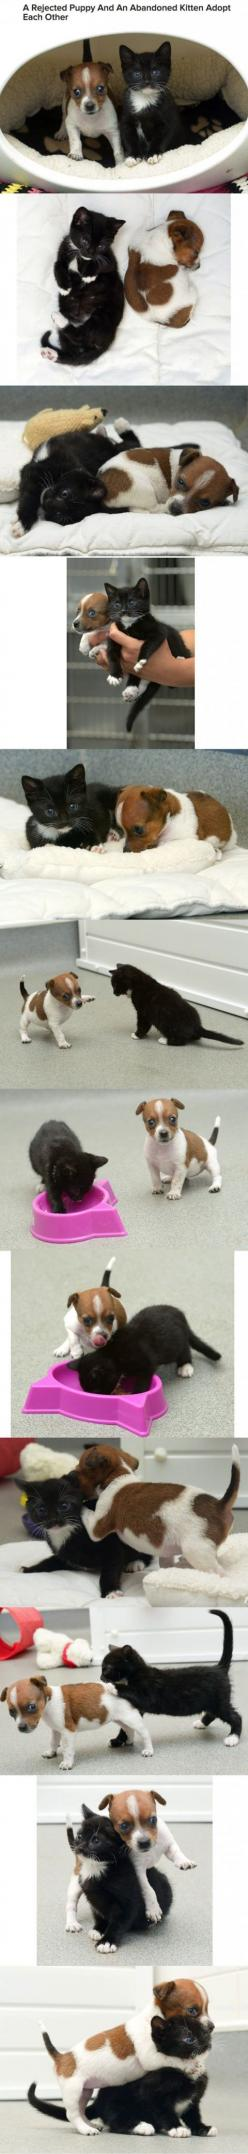 no words this is the cutest thing in the world. Animals are so adorable: Cuteness Overload, Kitten, Animals, Cat, Sweet, Best Friends, Puppy, Dog